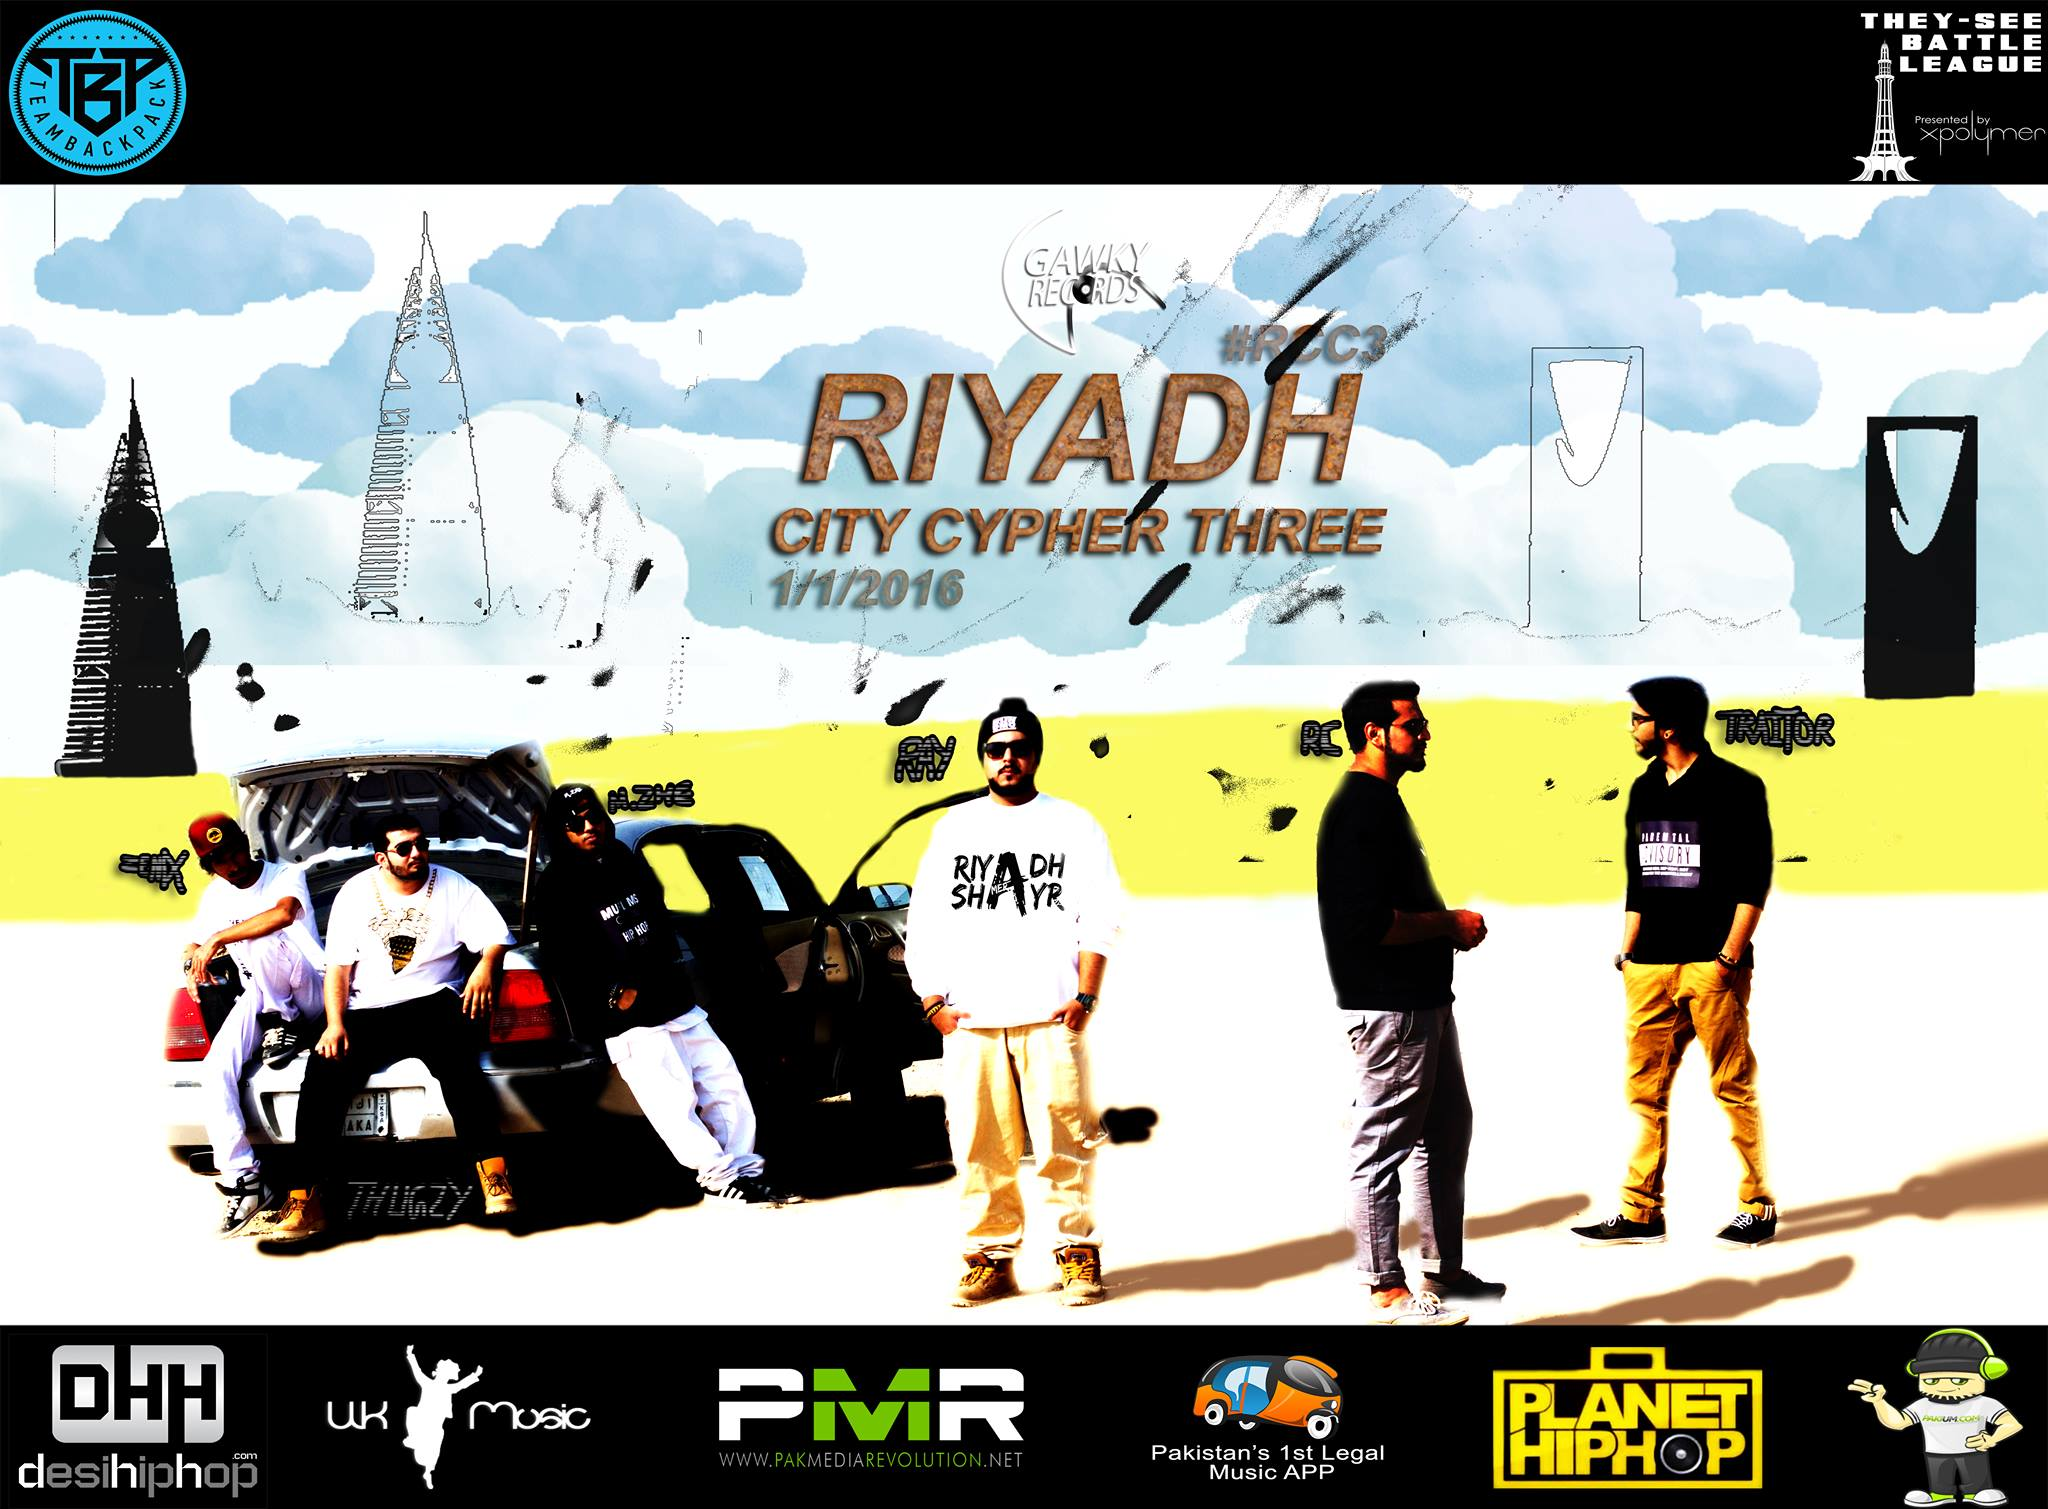 riyadh city cypher